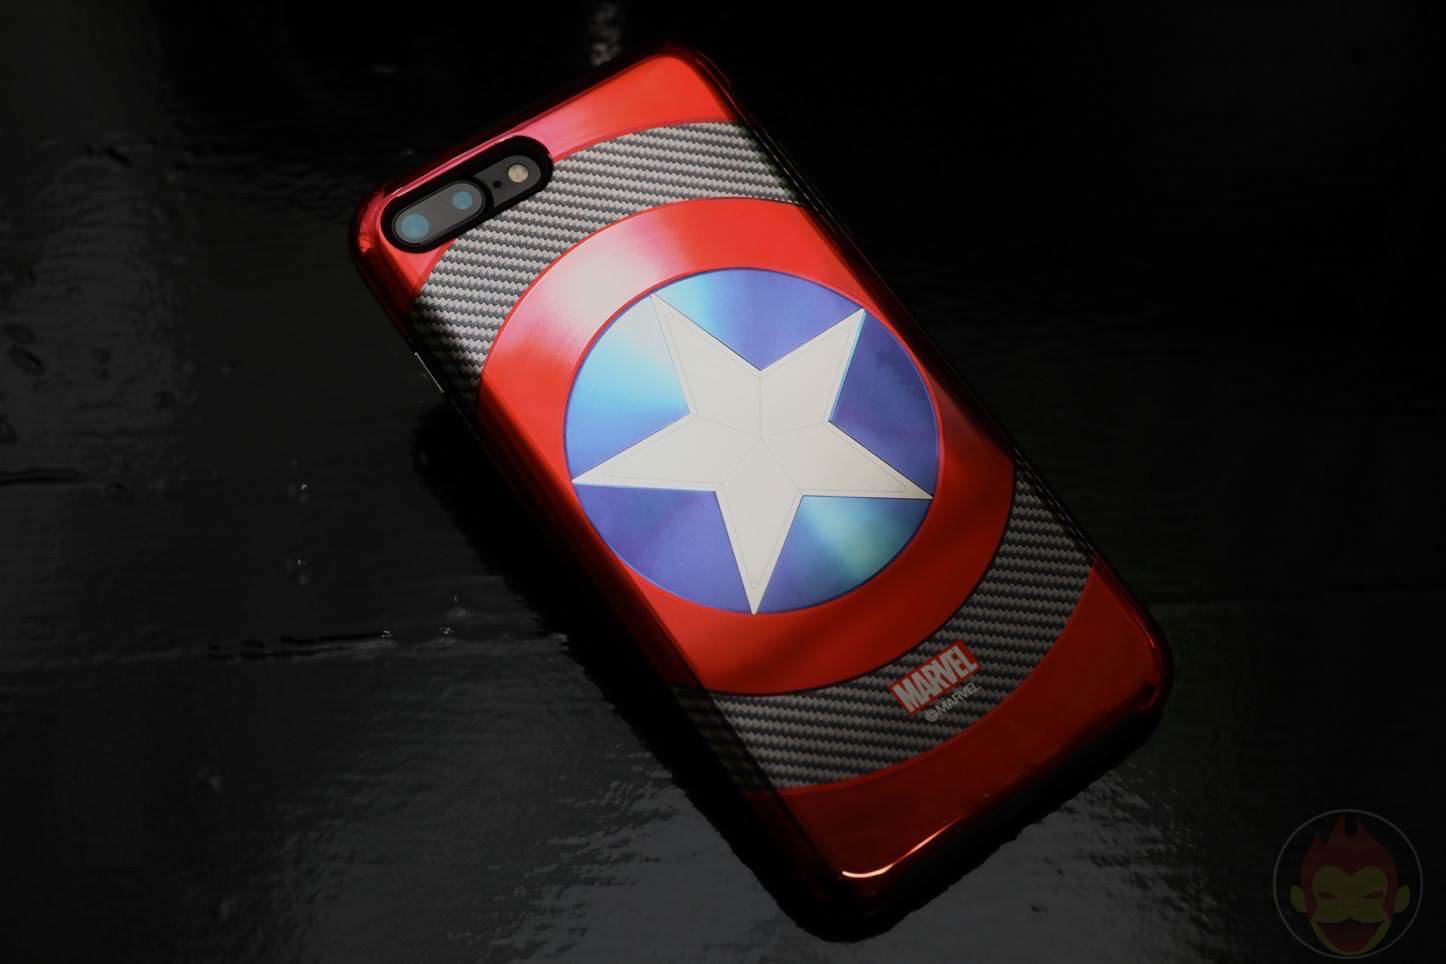 MARVEL Design iPhone 7 Plus Case and Ring